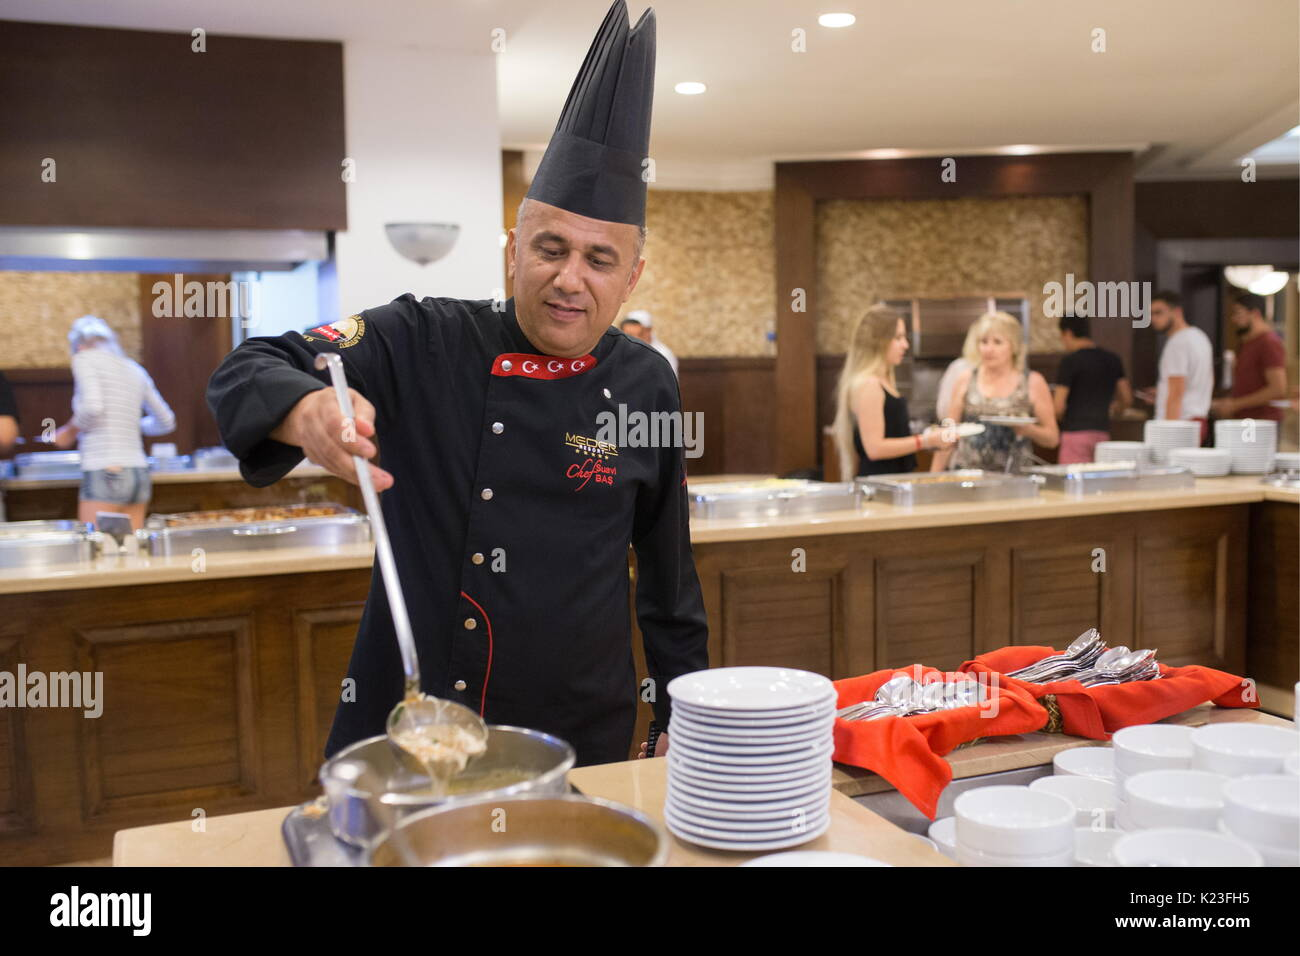 Kemer, Turkey. 26th Aug, 2017. A chef at the Meder Resort Hotel. Credit: Sergei Bobylev/TASS/Alamy Live News - Stock Image